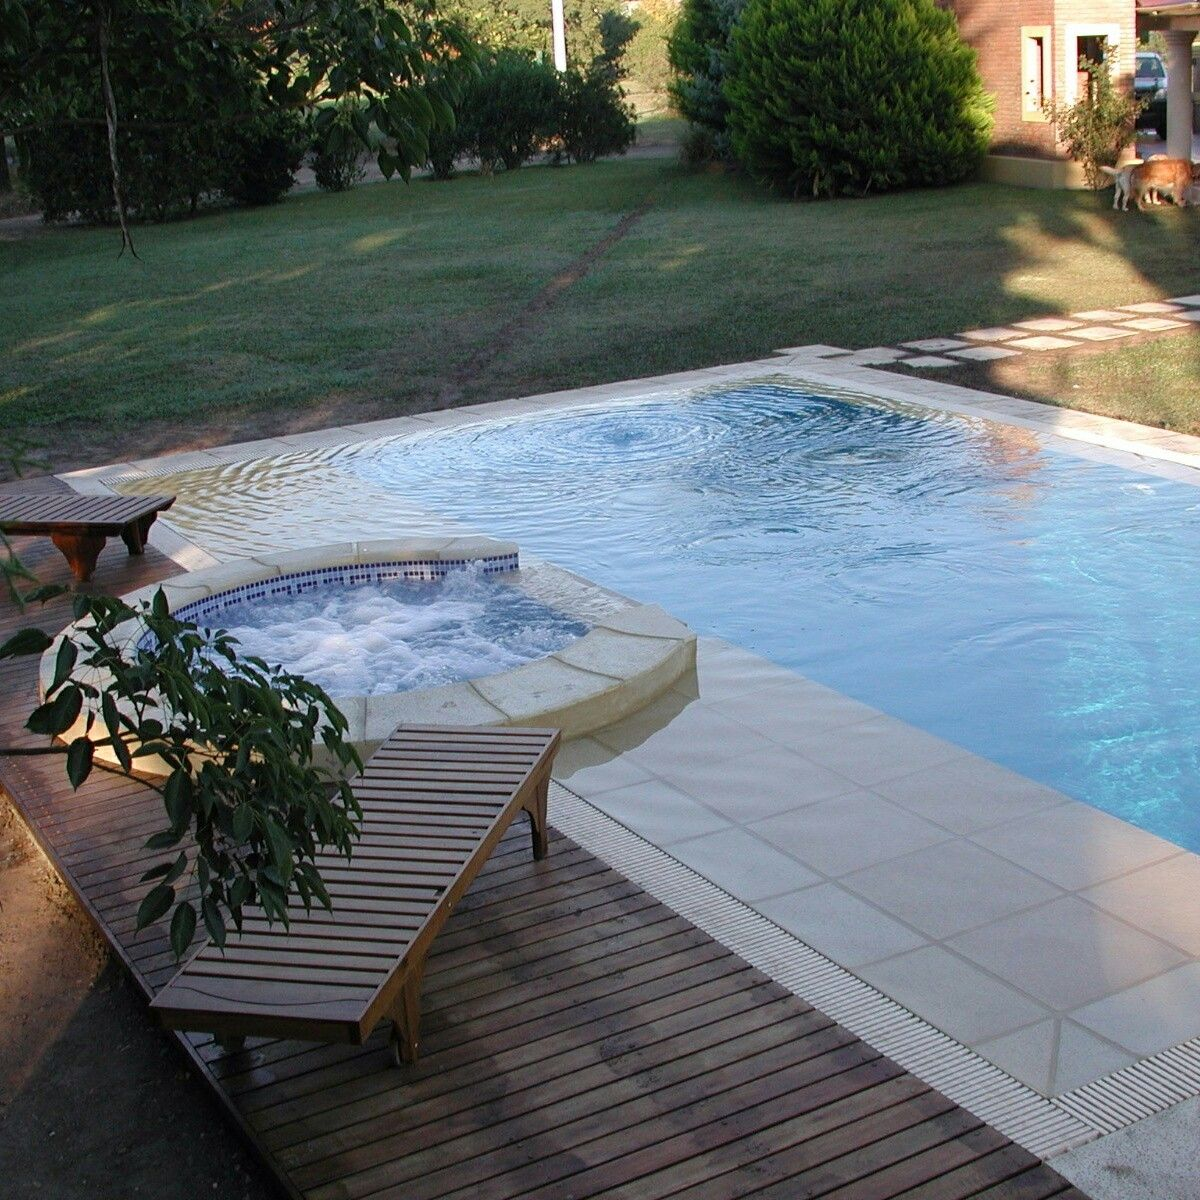 Swimming Pool Rectangular Shape With A Round Shape Jacuzzi Made